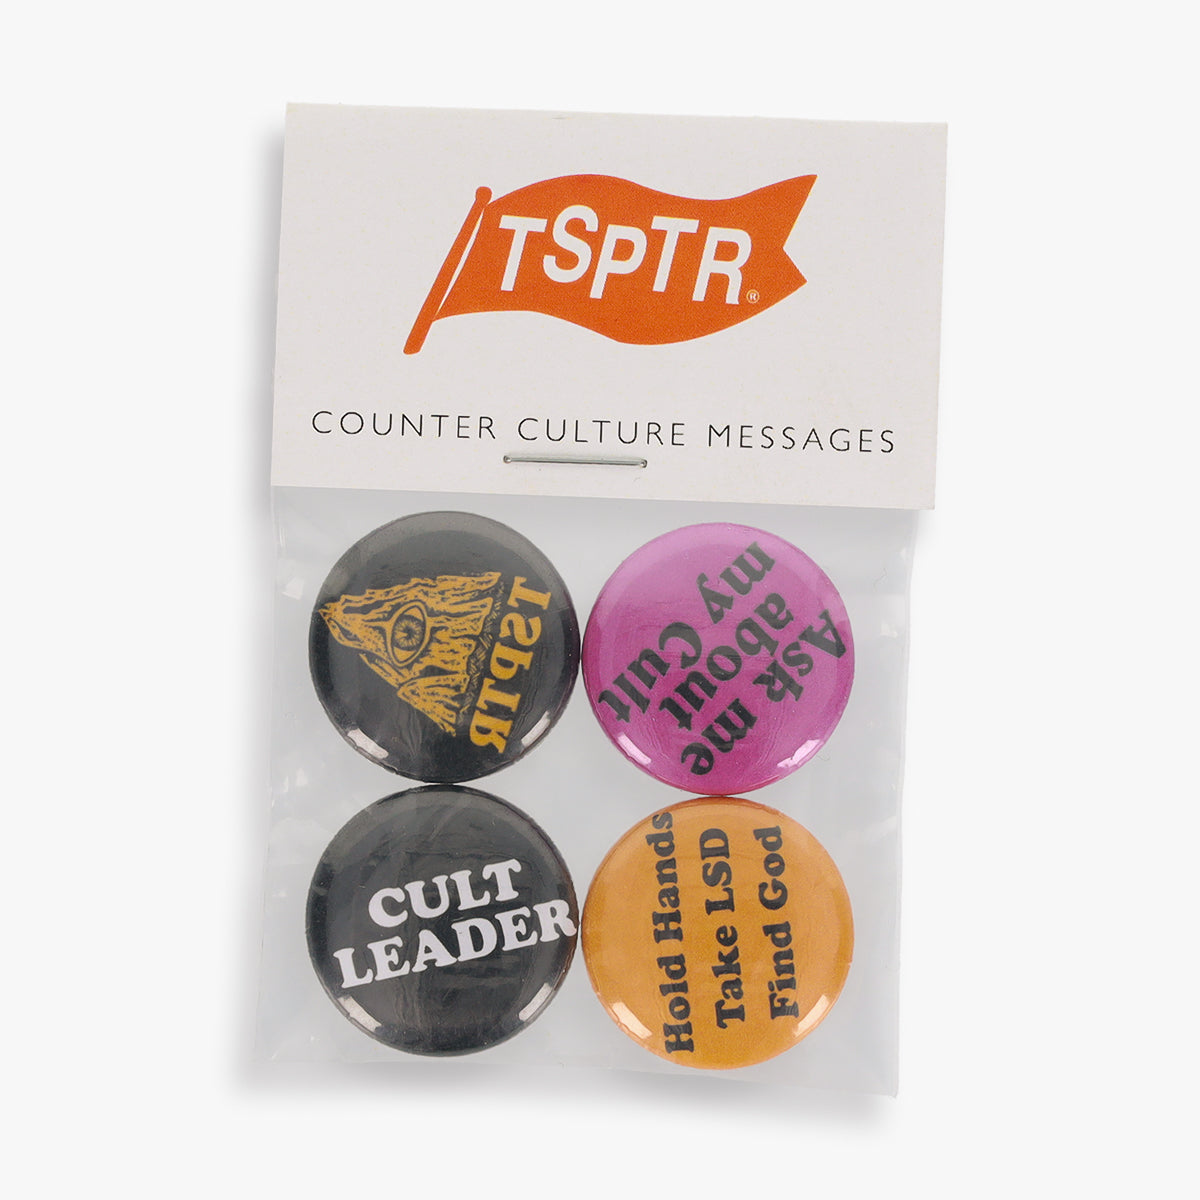 TSPTR Initiation Pin Pack